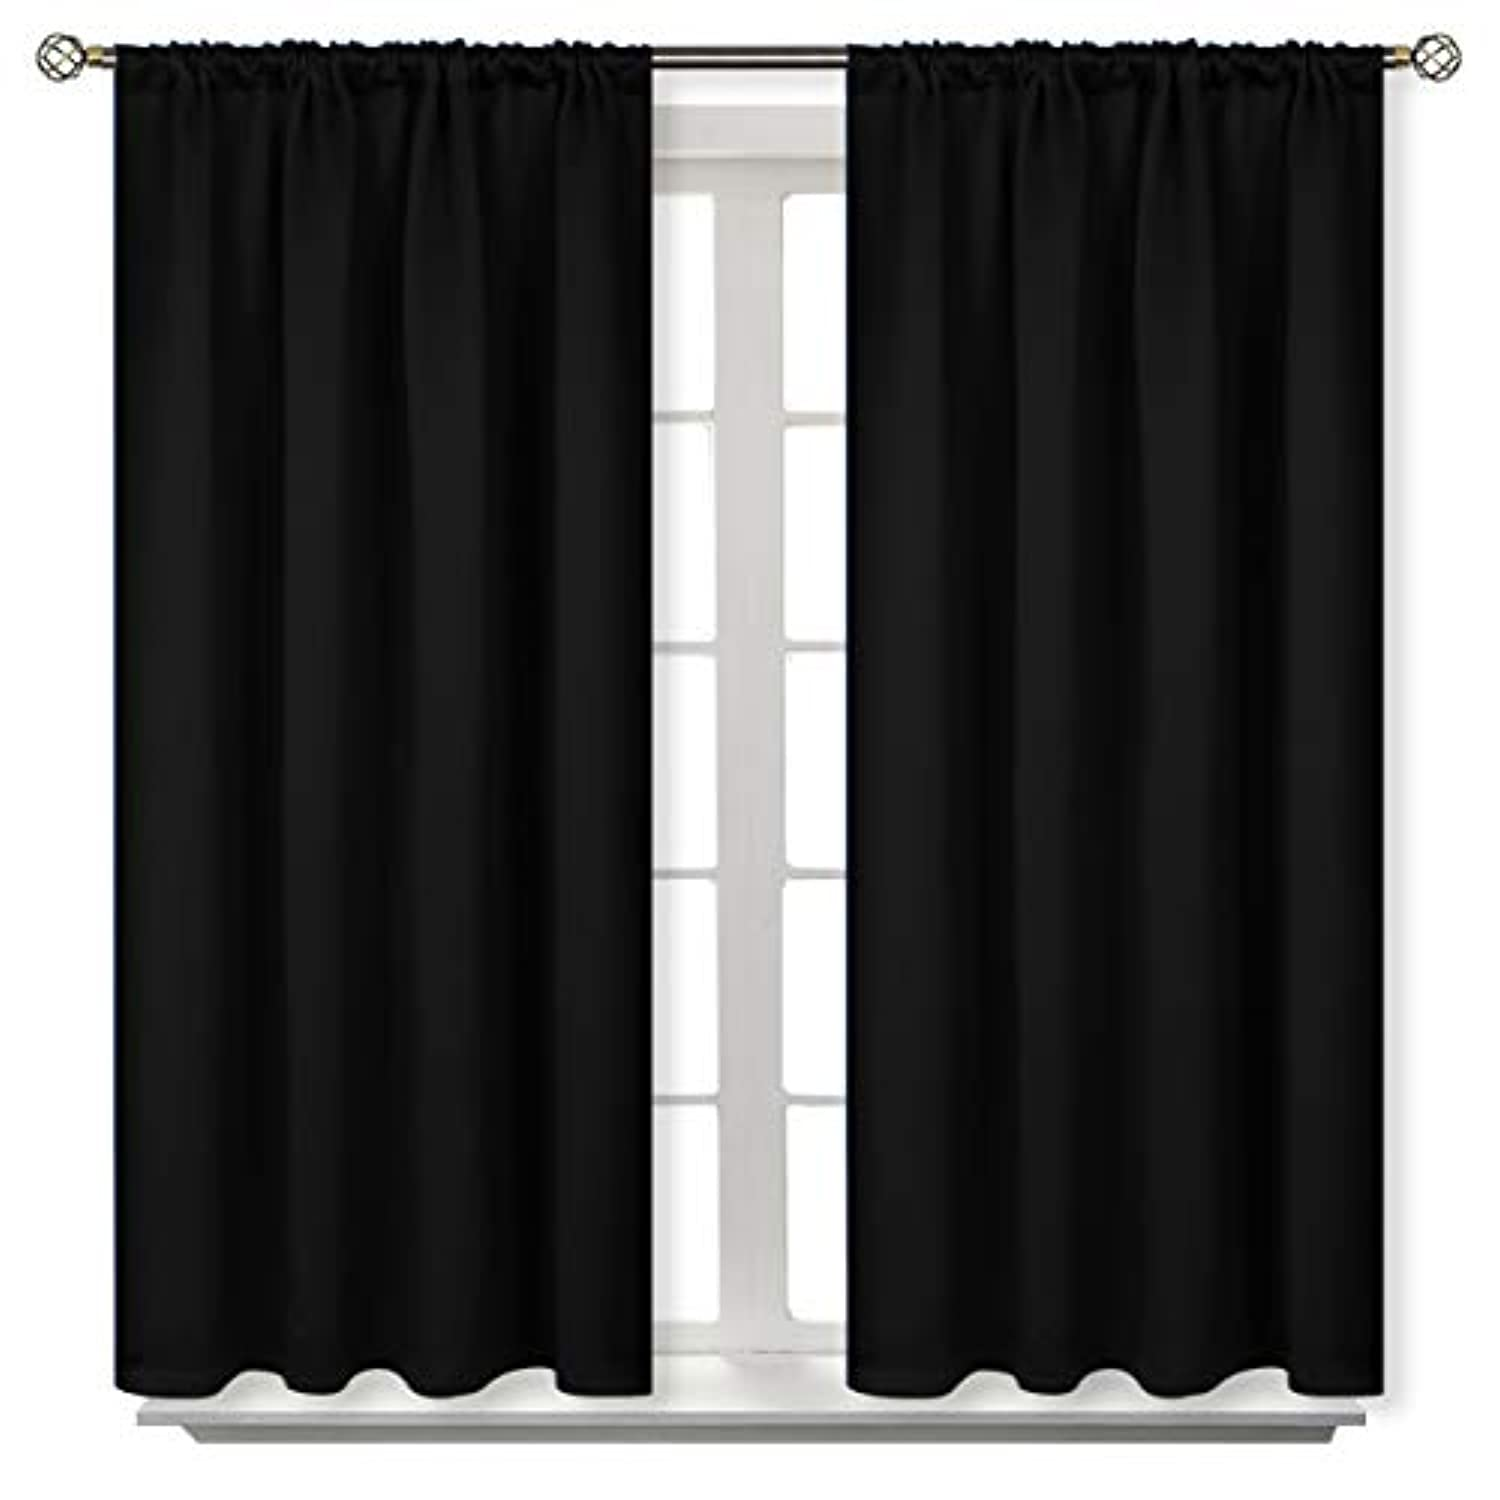 Blackout Curtains for Bedroom - Thermal Insulated Room